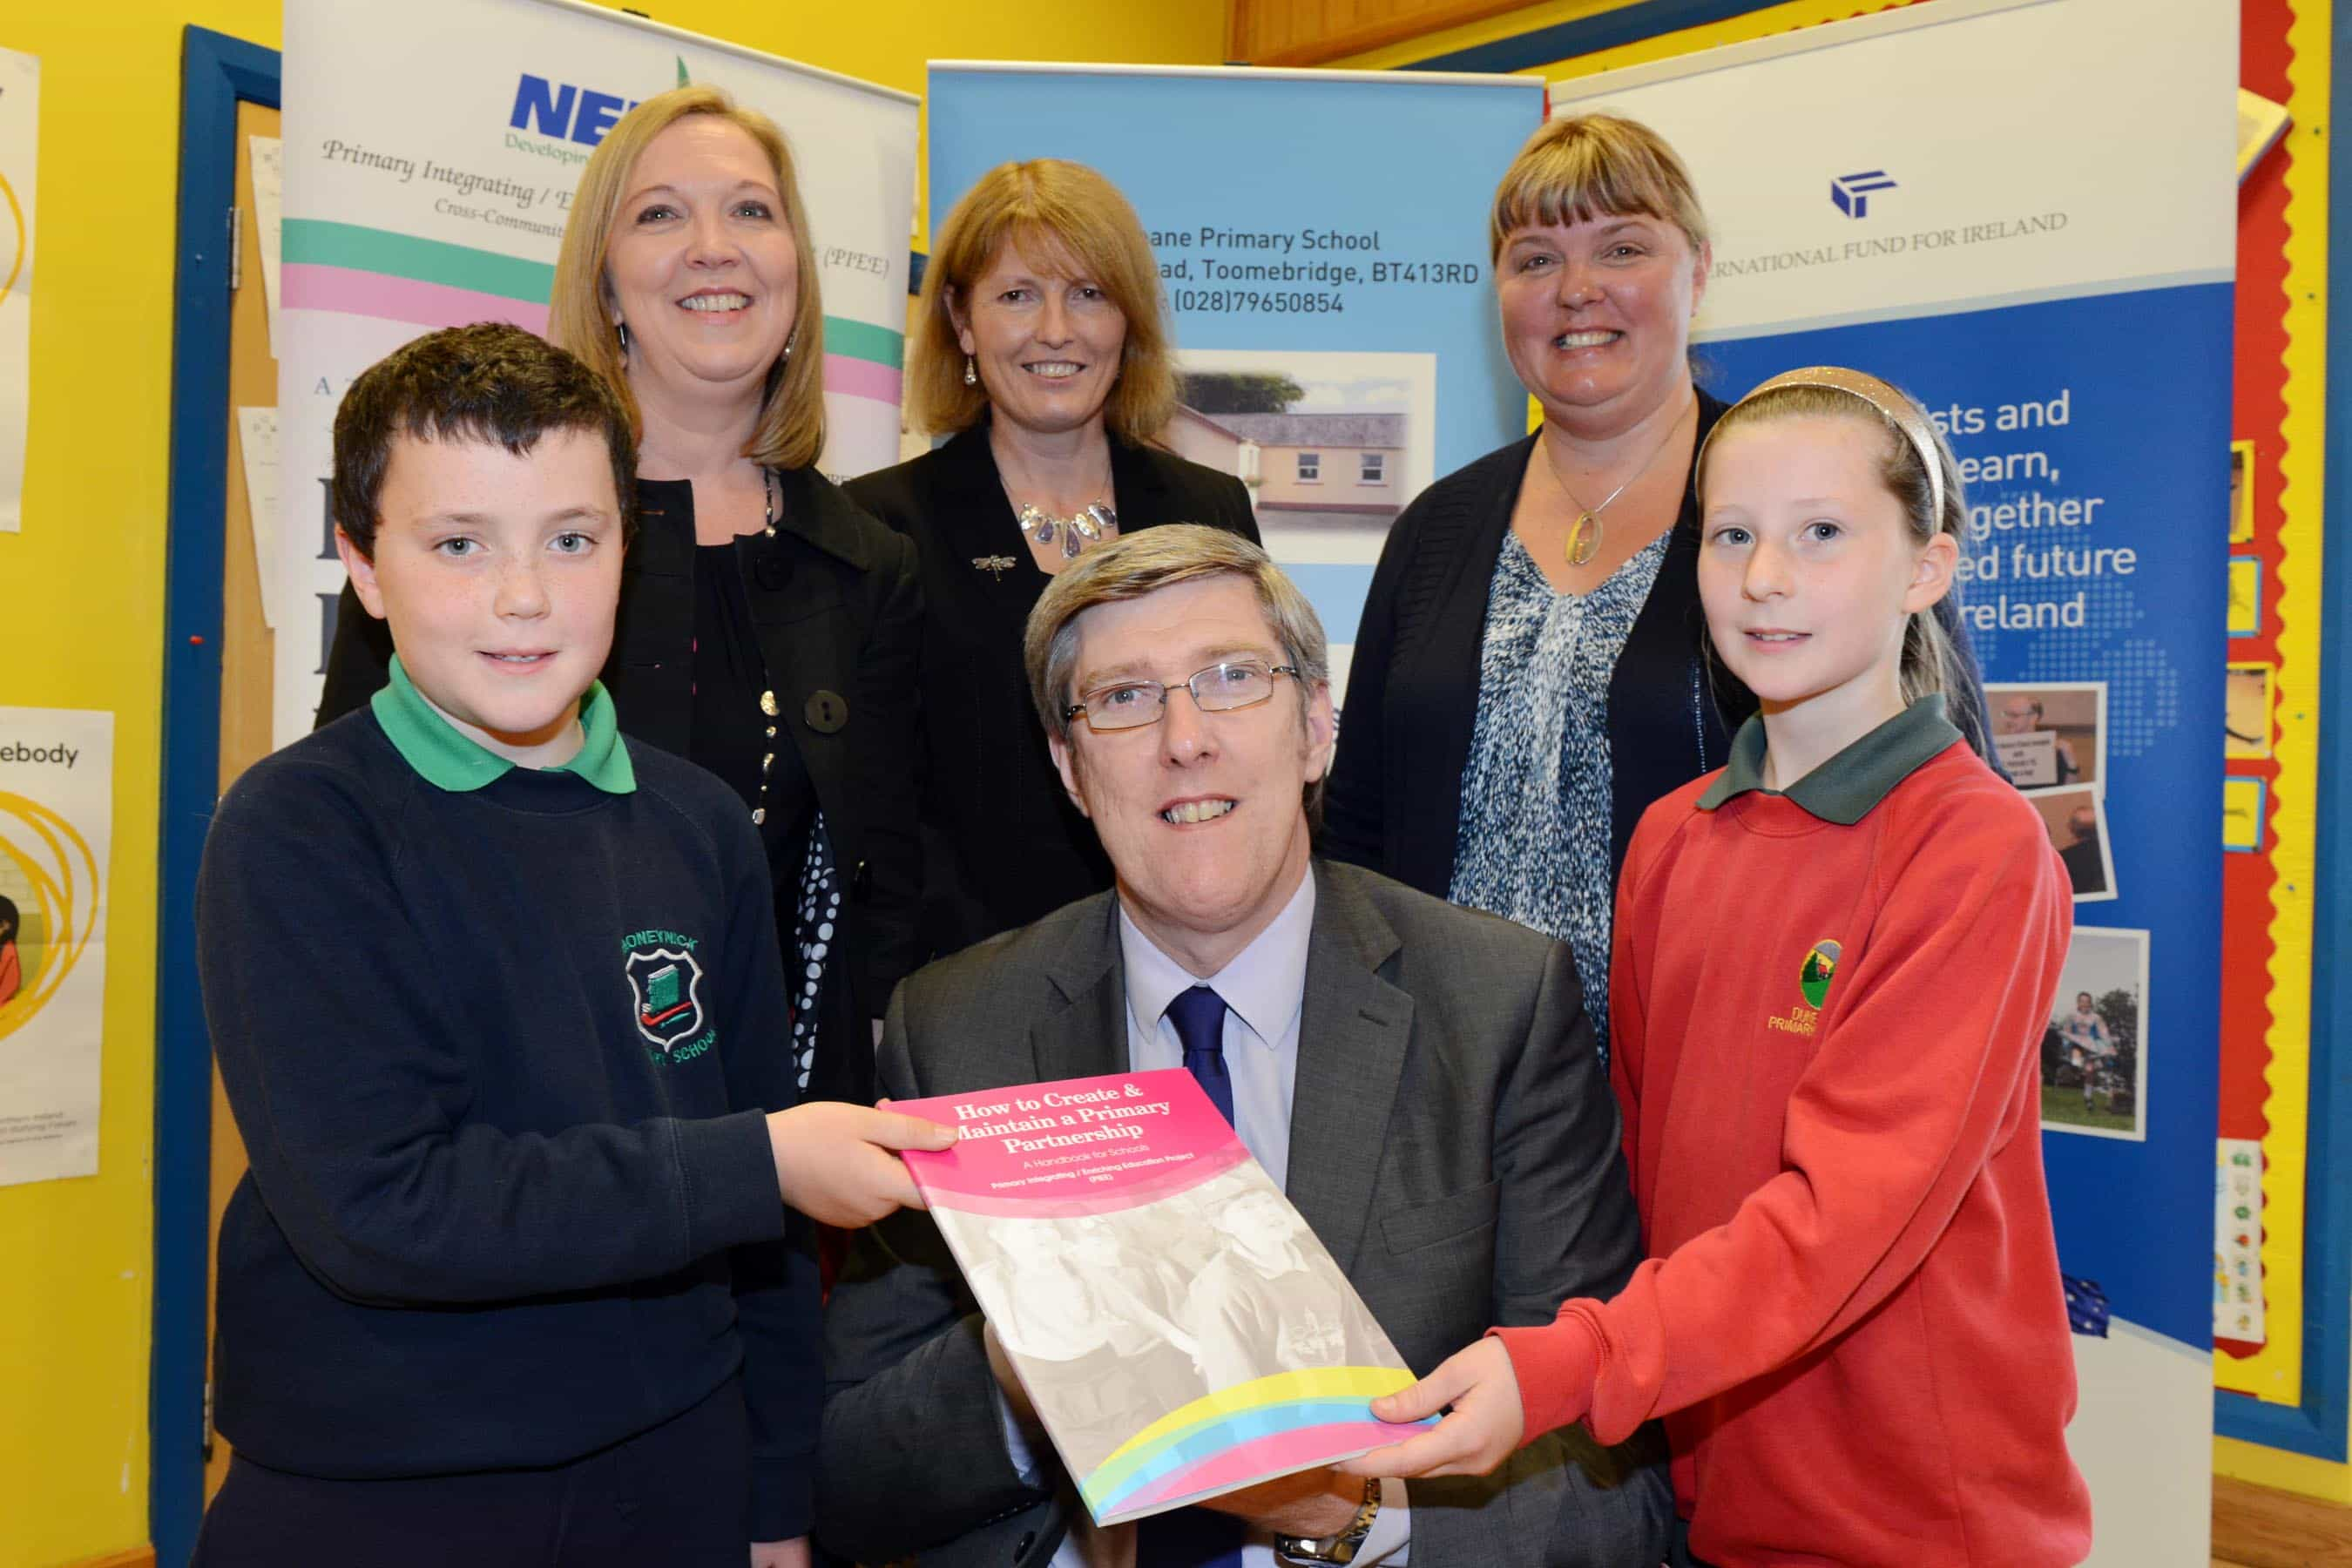 Education_Minister_John_ODowd_visited_Moneynick_and_Duneane_Primary_Schools_DAS_1327